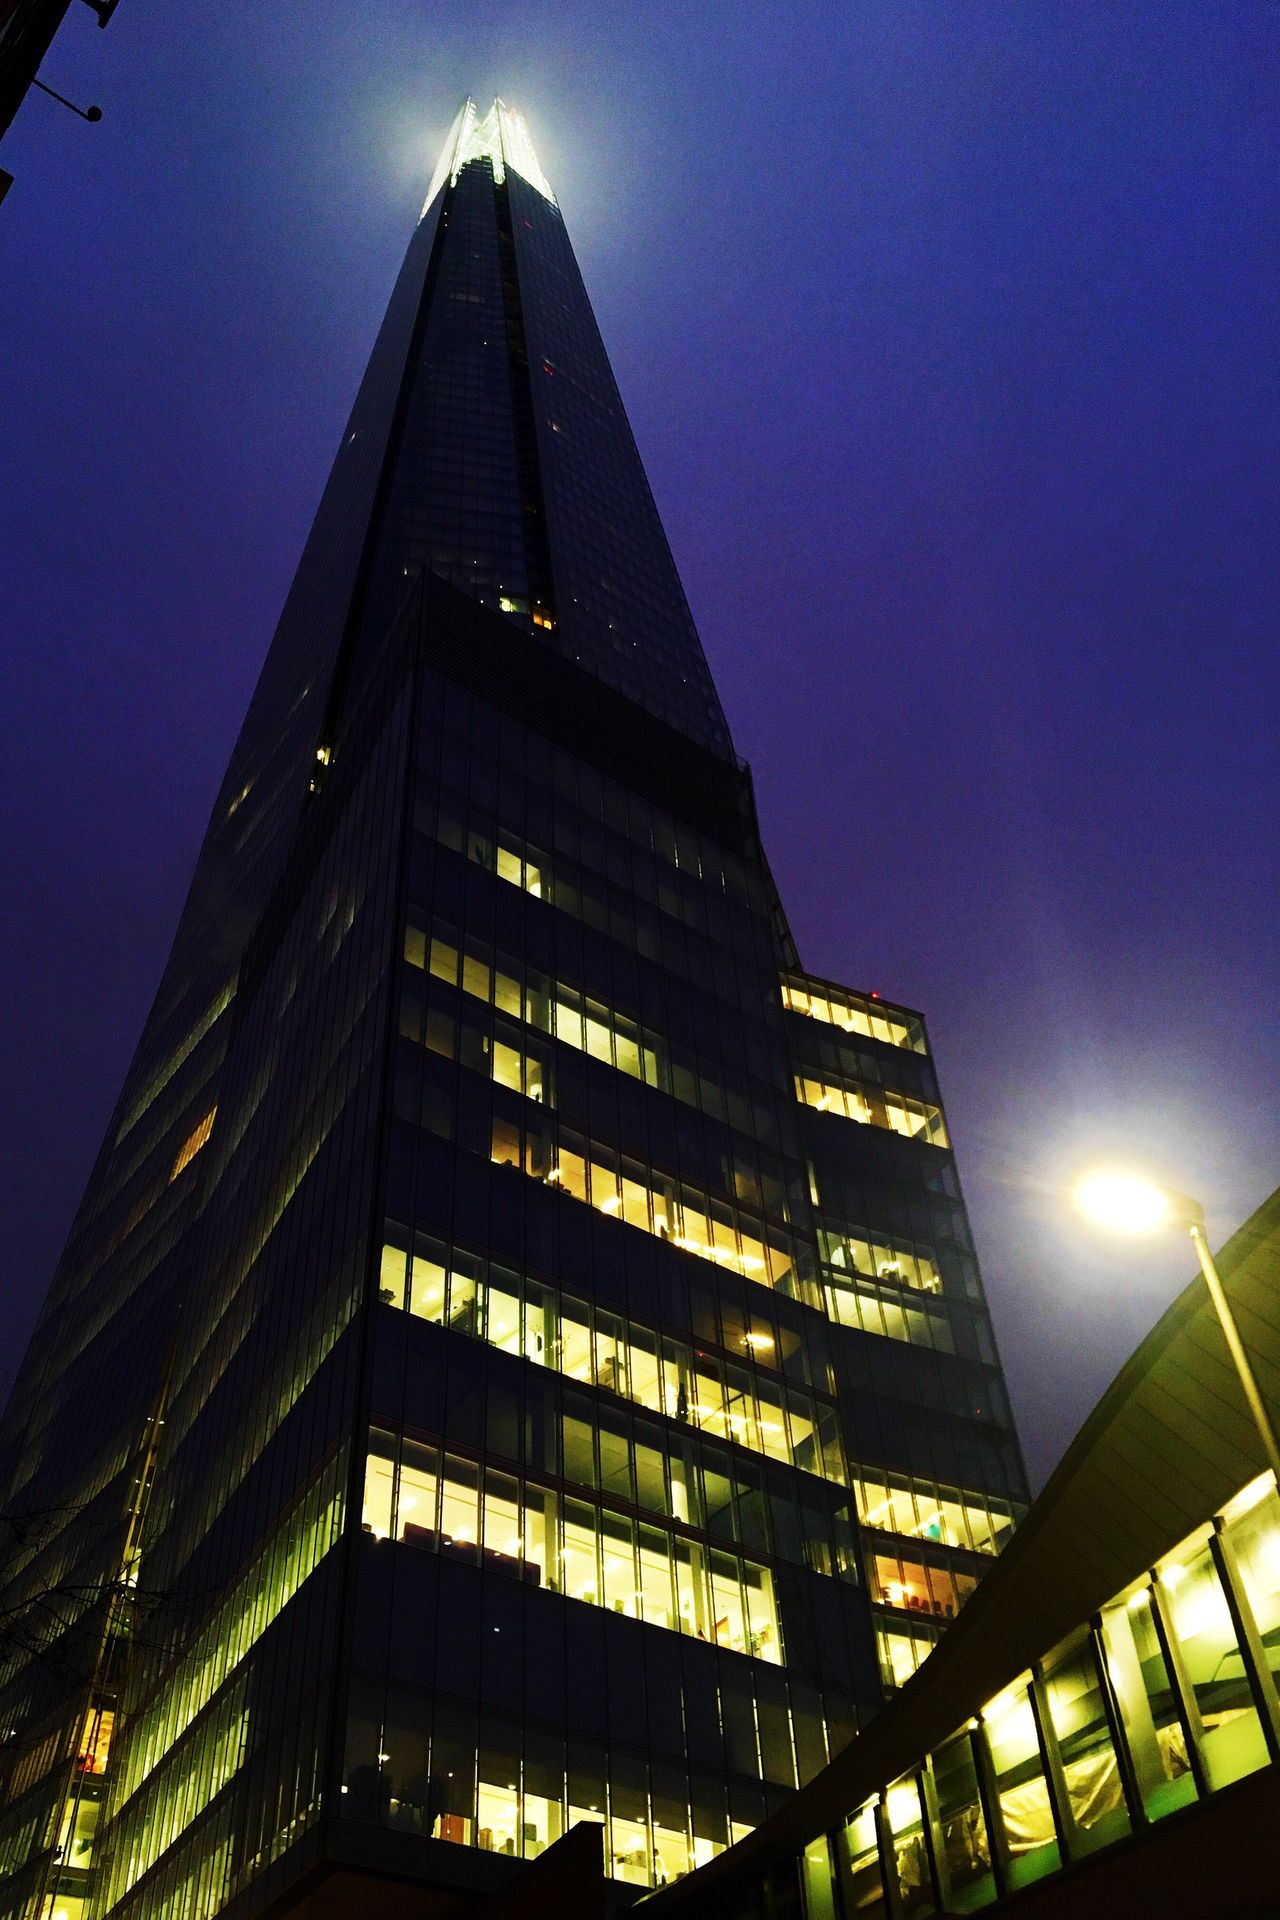 Architecture Building Exterior Built Structure Illuminated Low Angle View City Modern No People Night Sky Sunrise London Skyscraper Light Up Your Life Outdoors Office Block